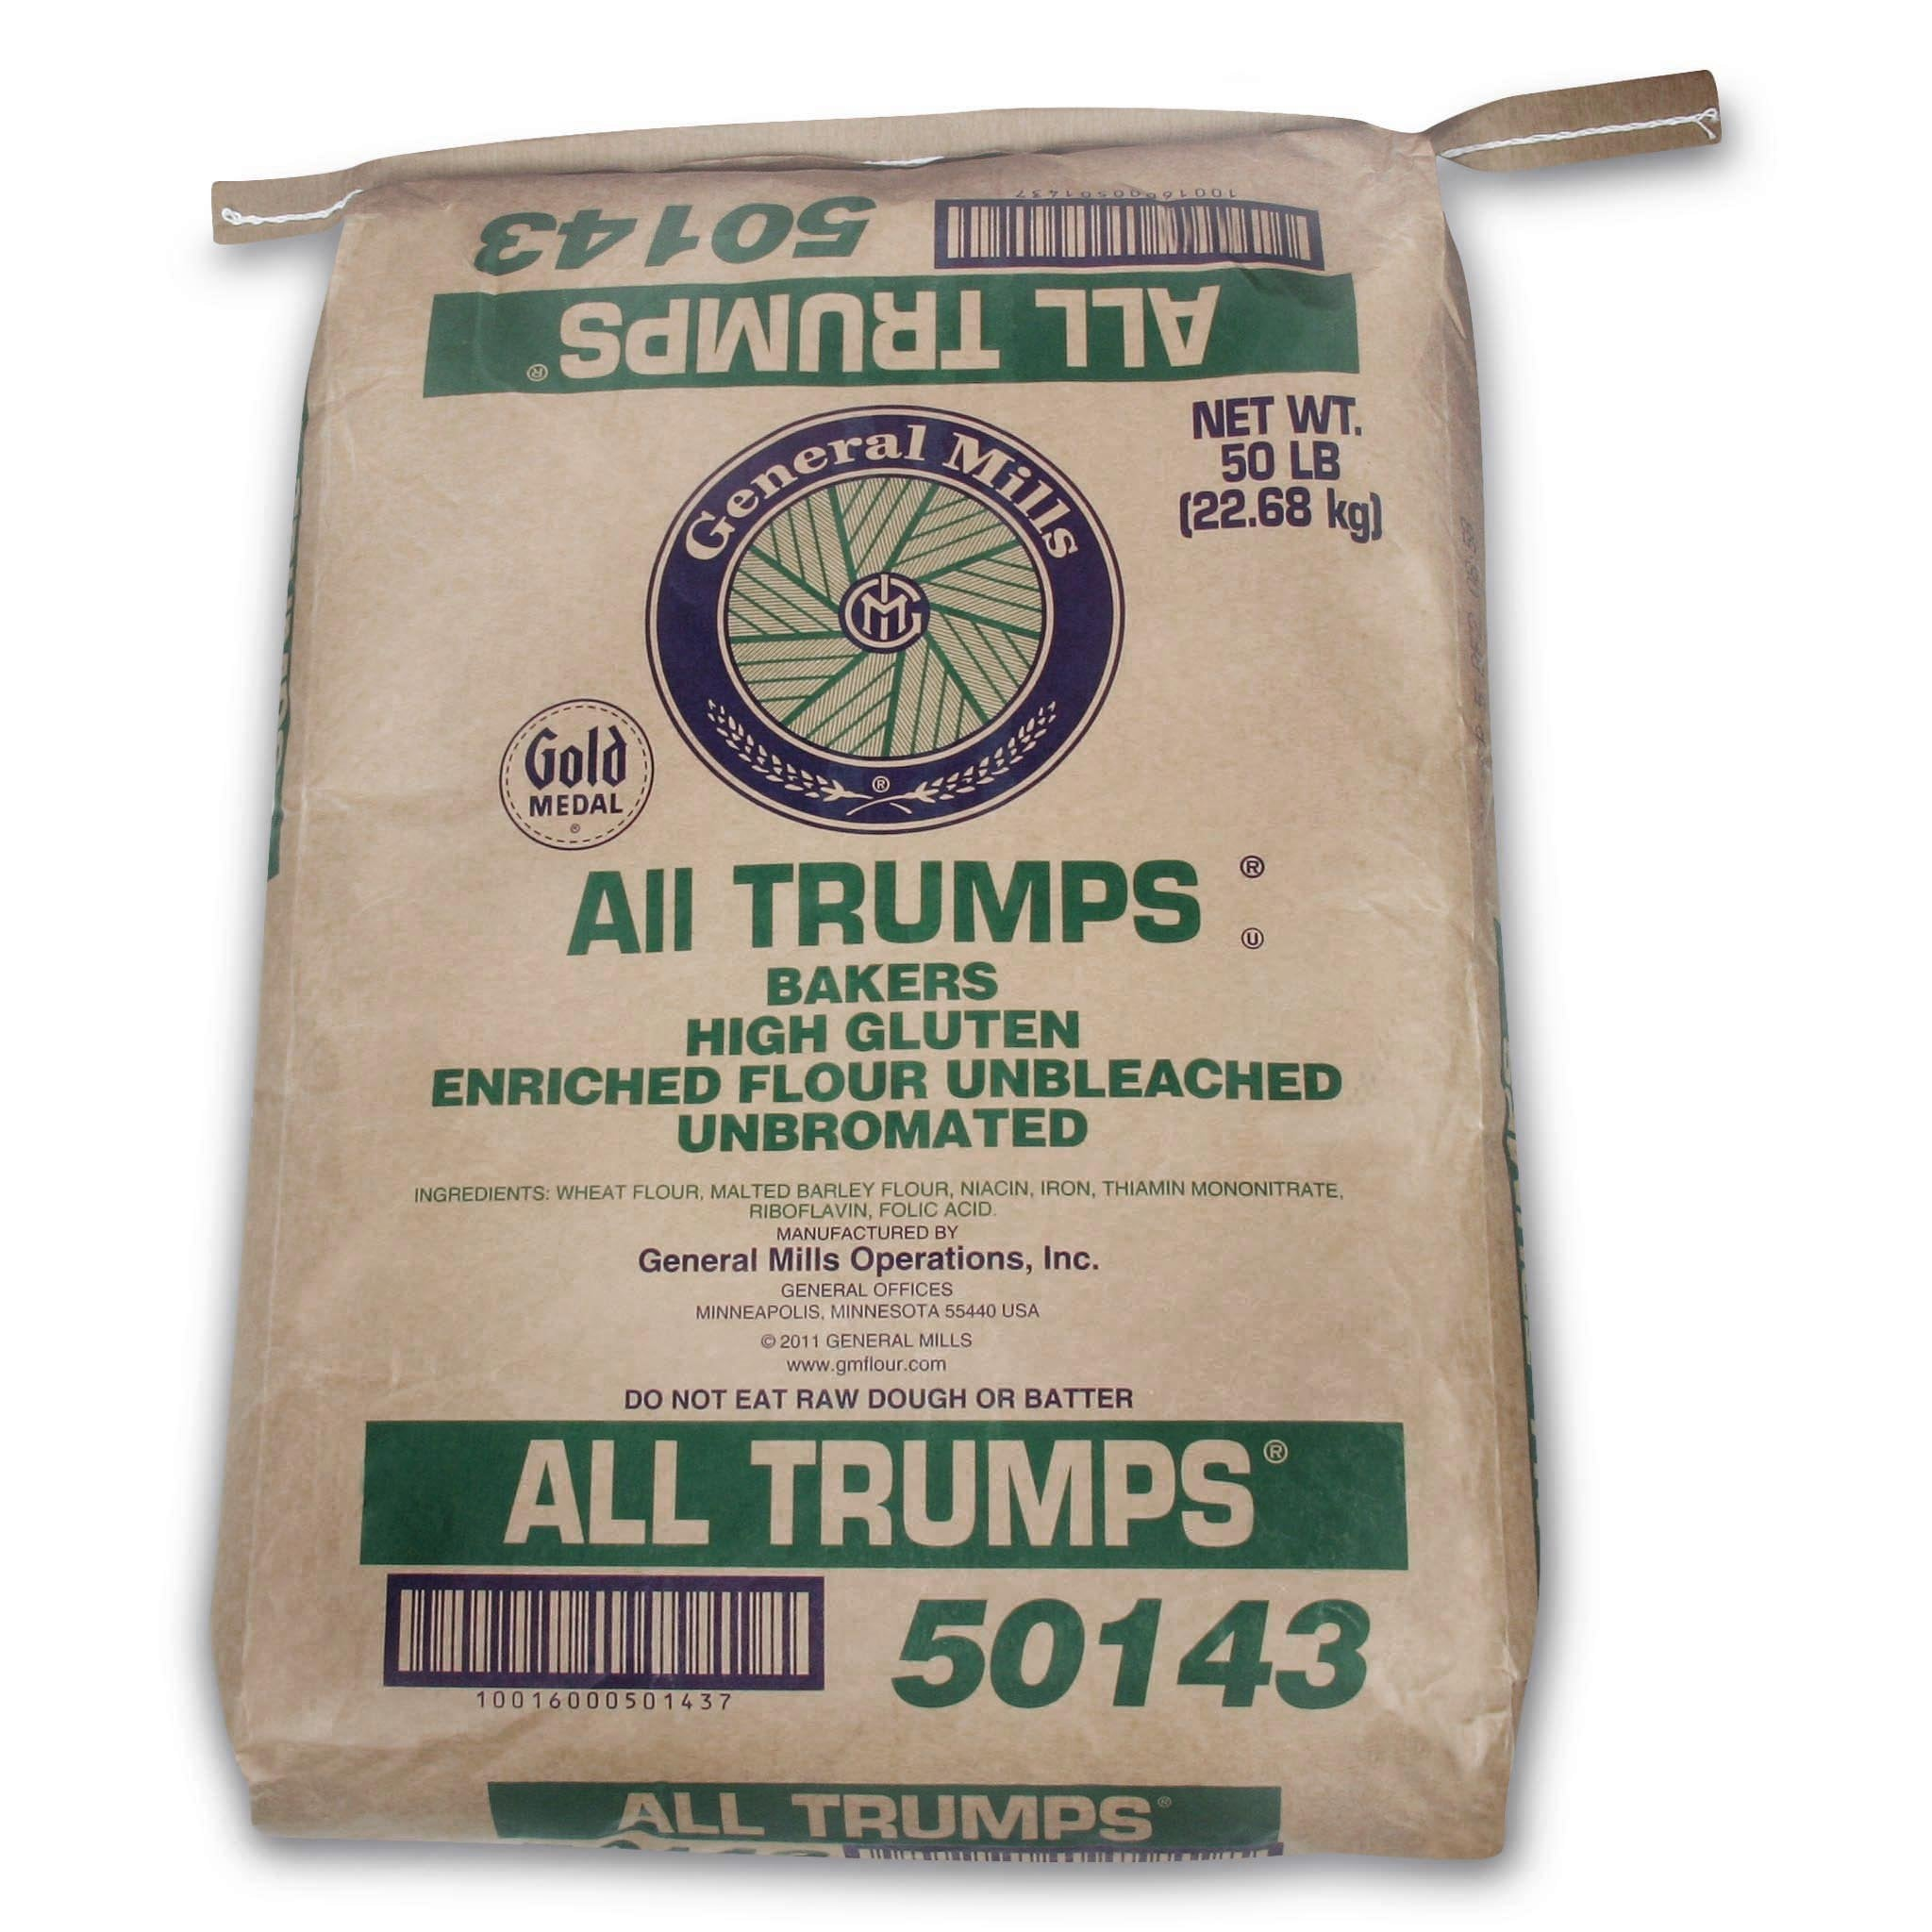 All Trumps Flour - High Gluten Unbleached & Unbromated by General Mills